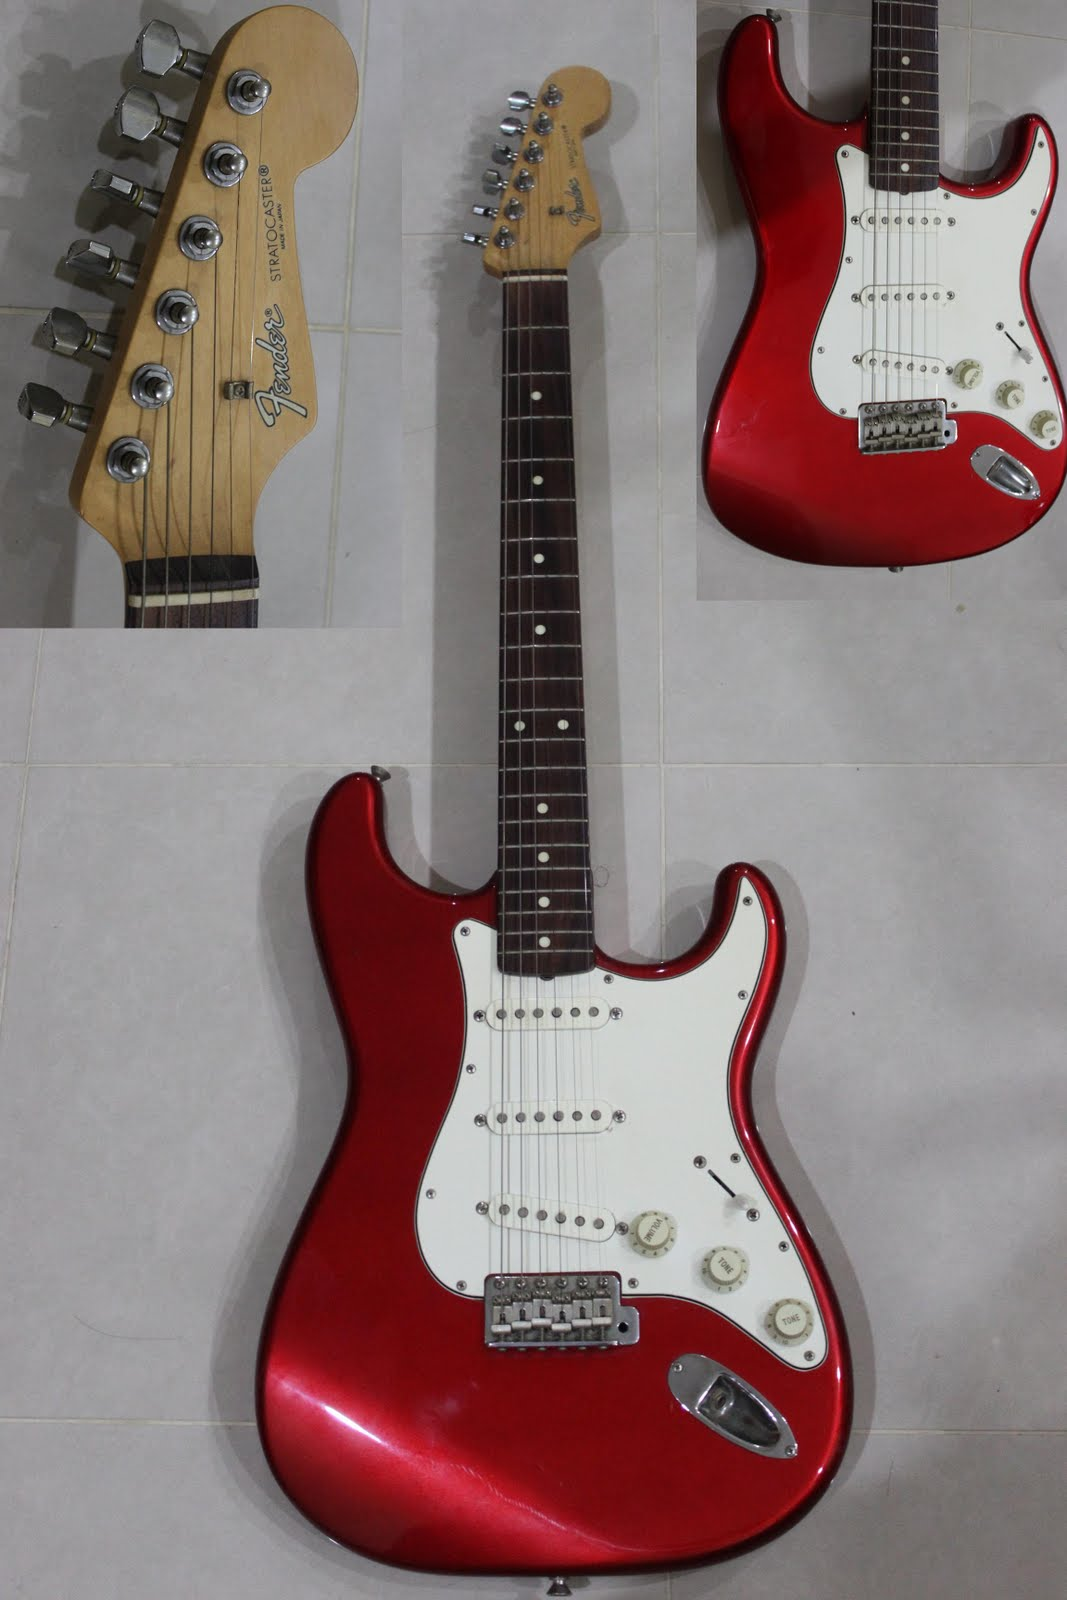 dating a squier bullet strat Explore stratocaster guitars from squier we recognize the need for high quality, economical instruments come see what we've made for you.